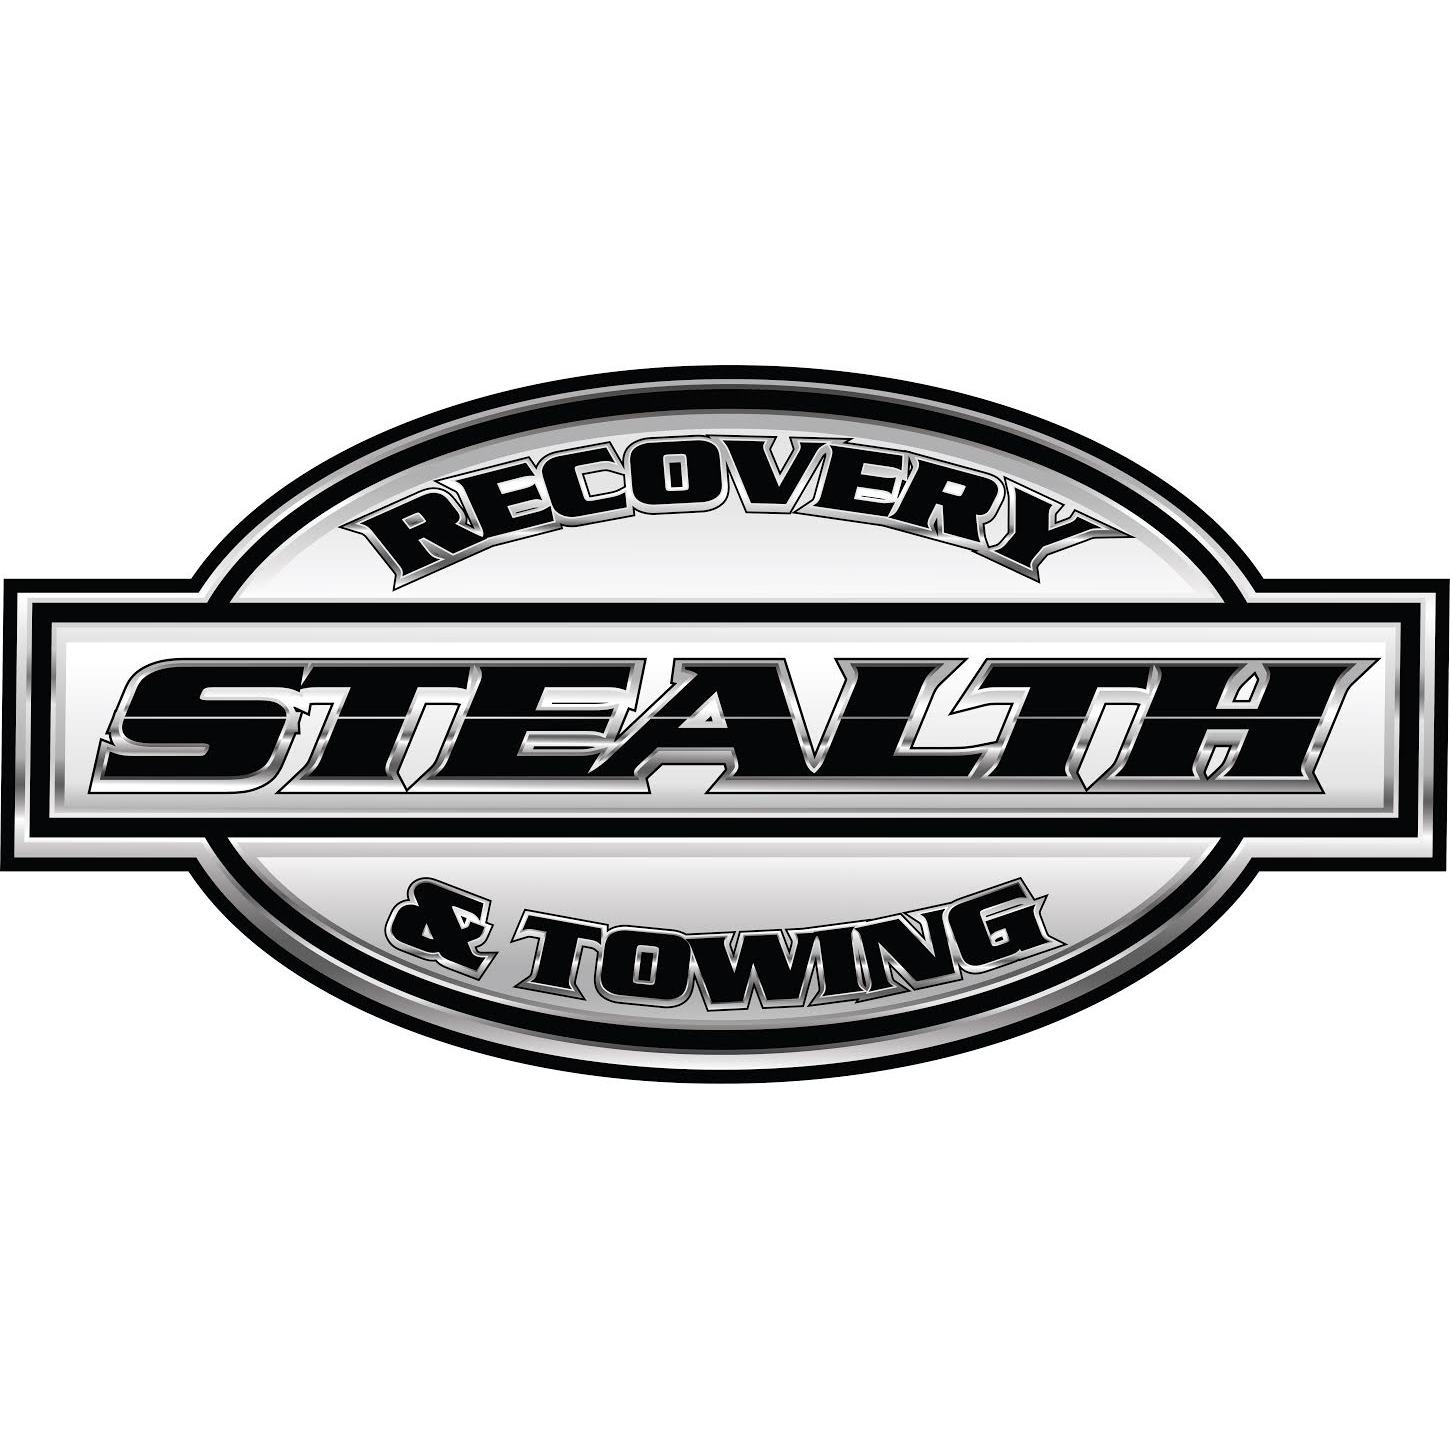 Stealth Recovery & Towing